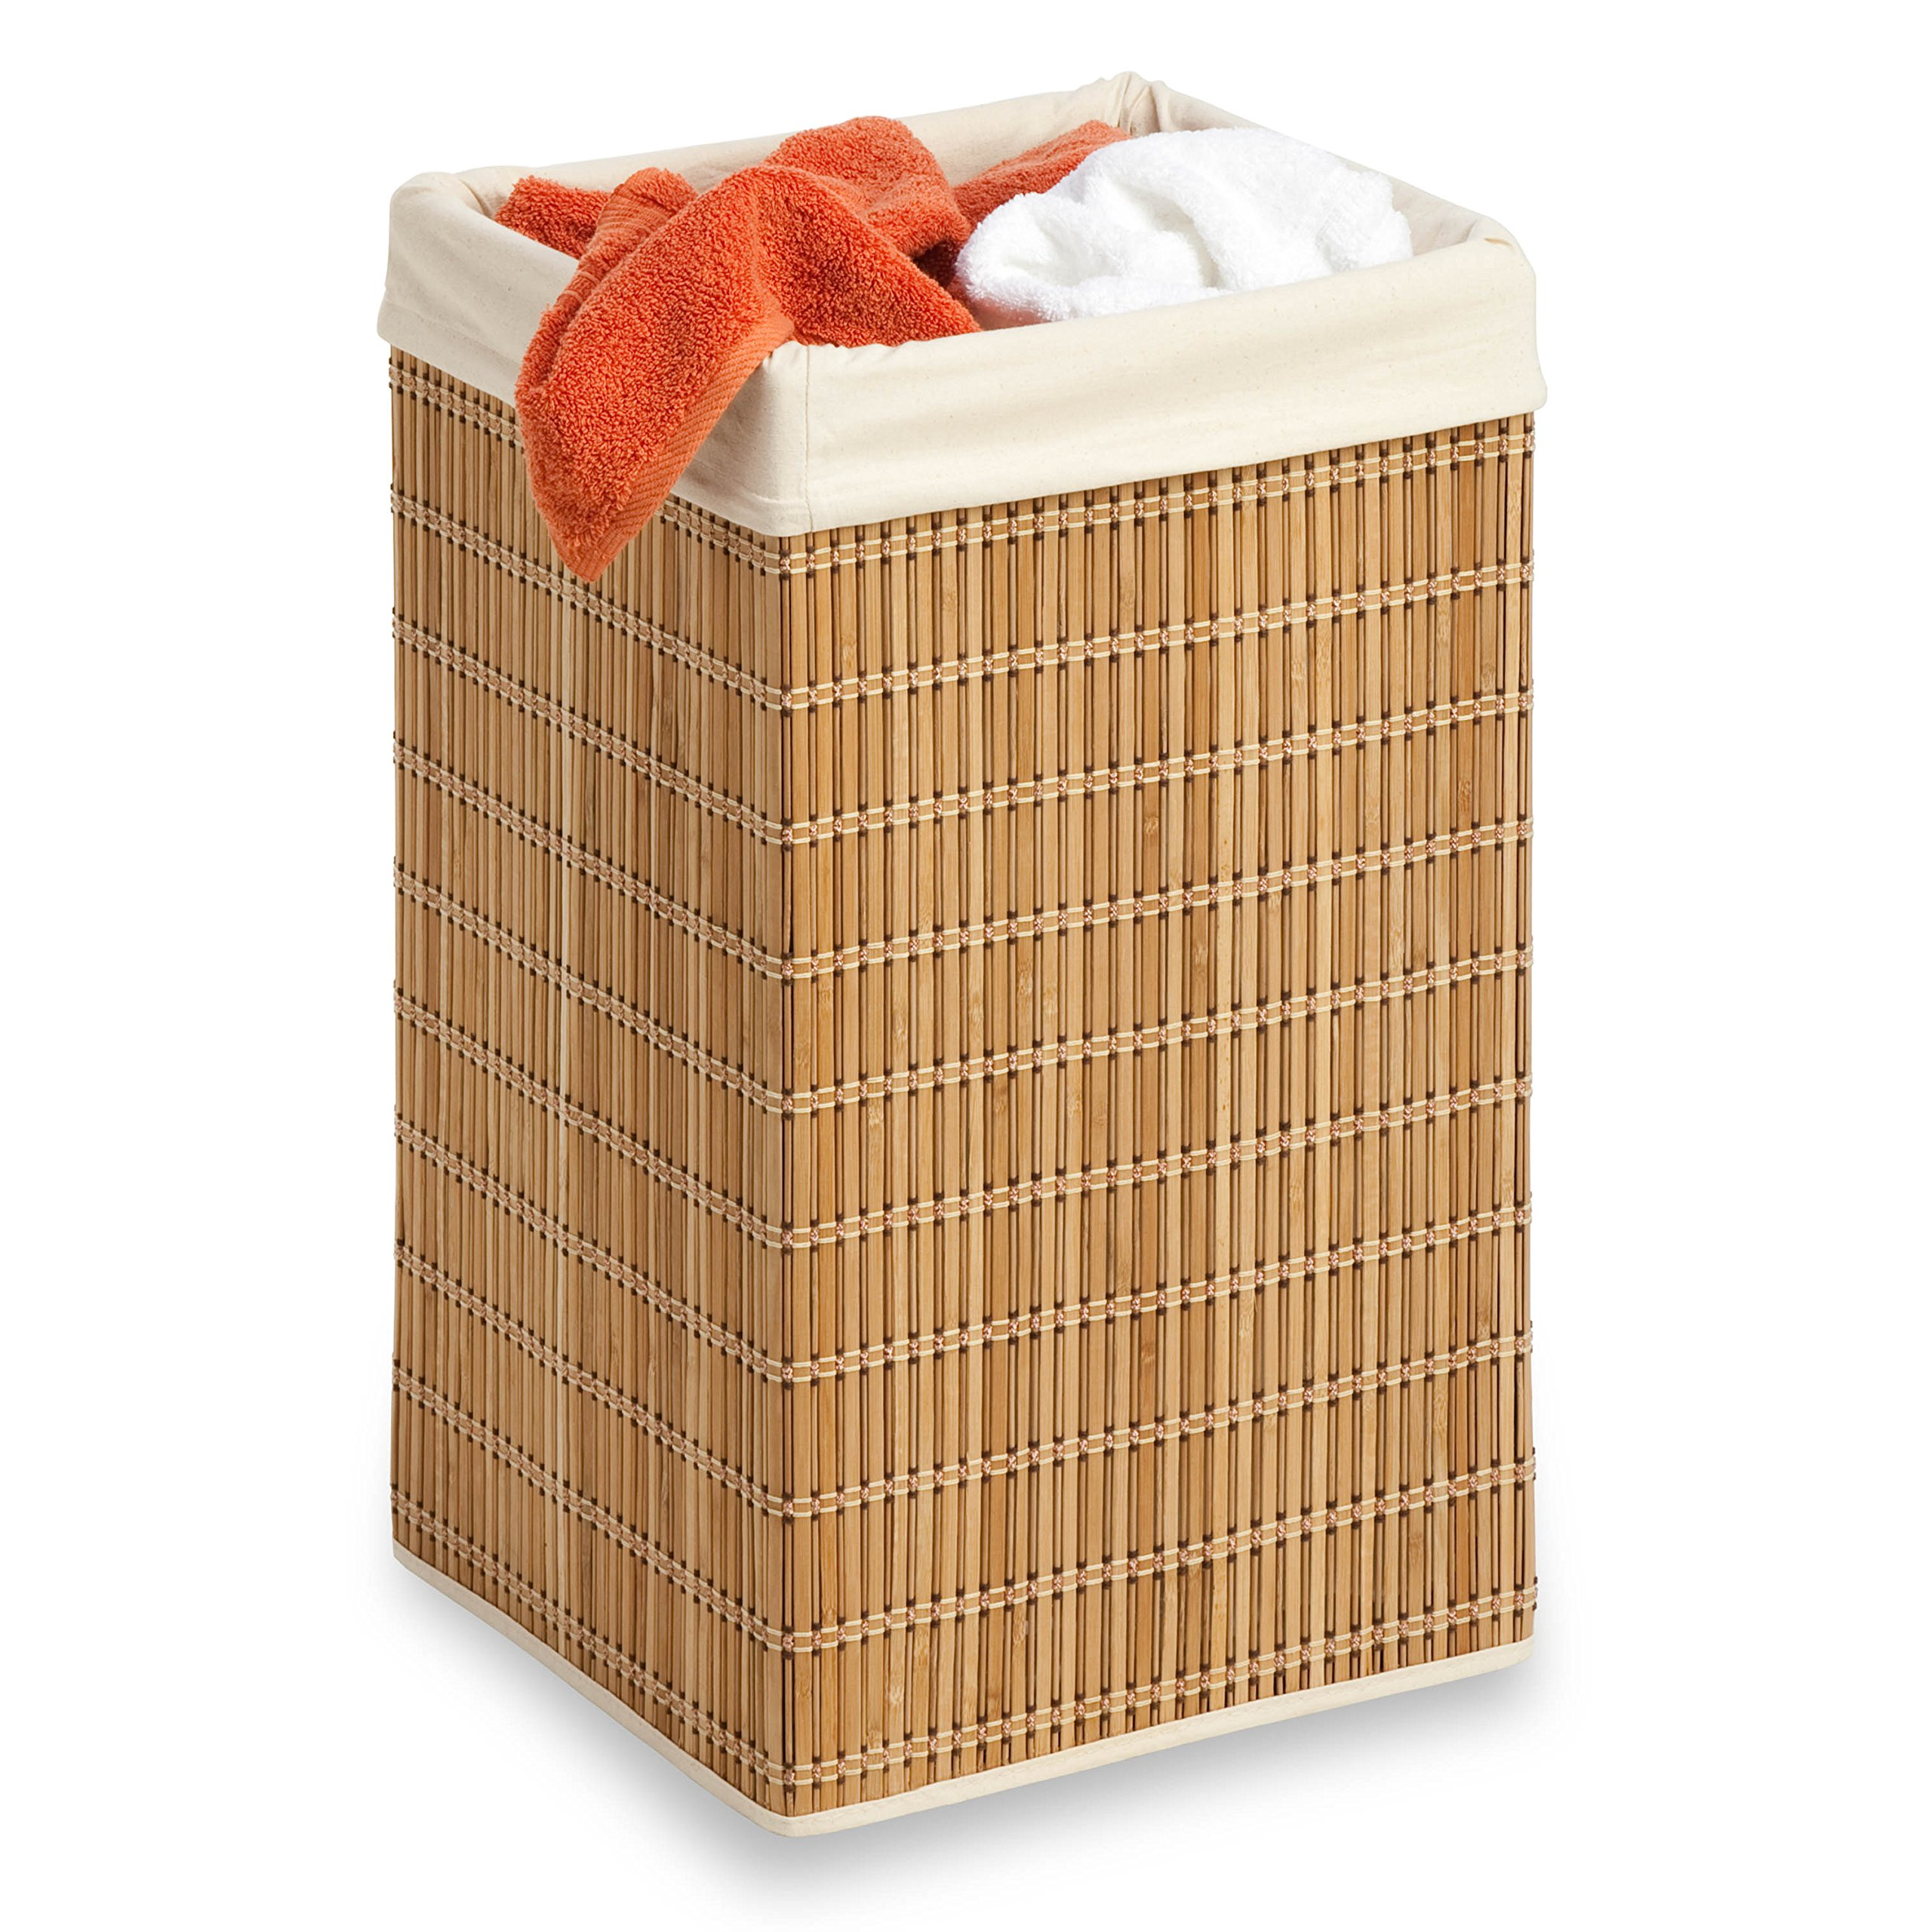 Honey-Can-Do HMP-01620 Square Hamper, Clothing Organizer, Bamboo by Honey-Can-Do